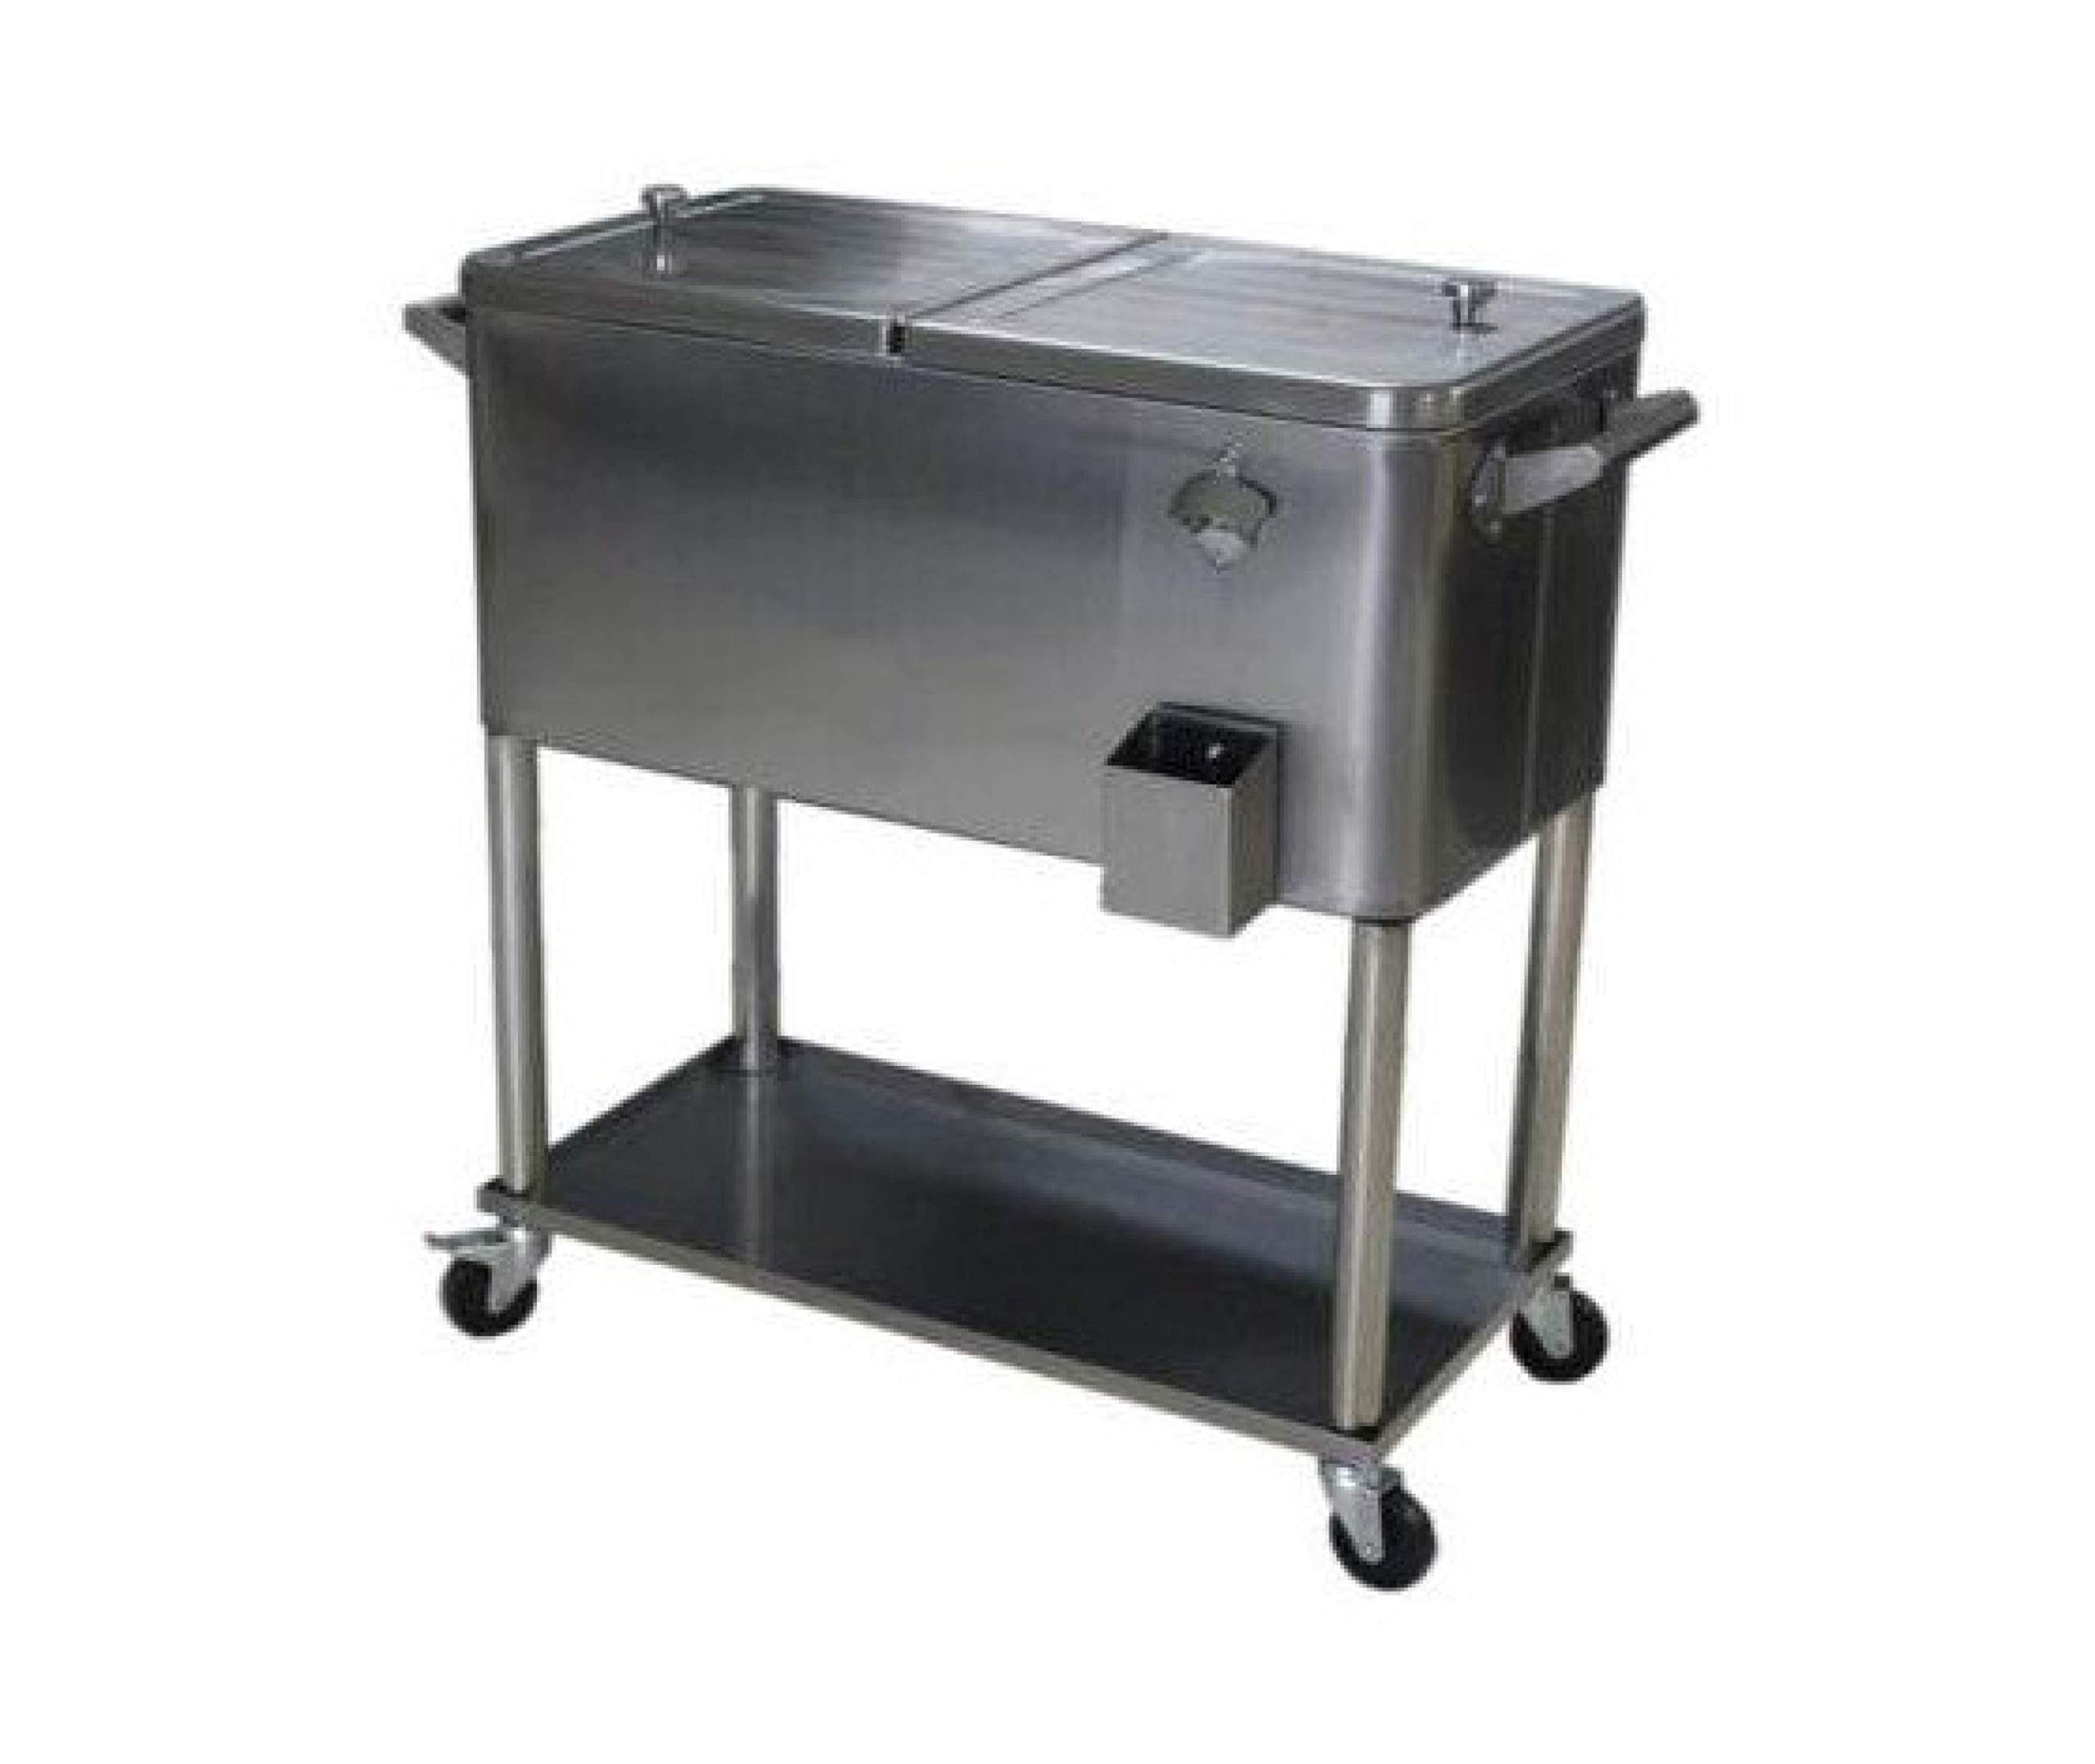 Permasteel PS-206-SS-AM 80 Quart Portable Rolling Patio Cooler, Stainless Steel by Permasteel